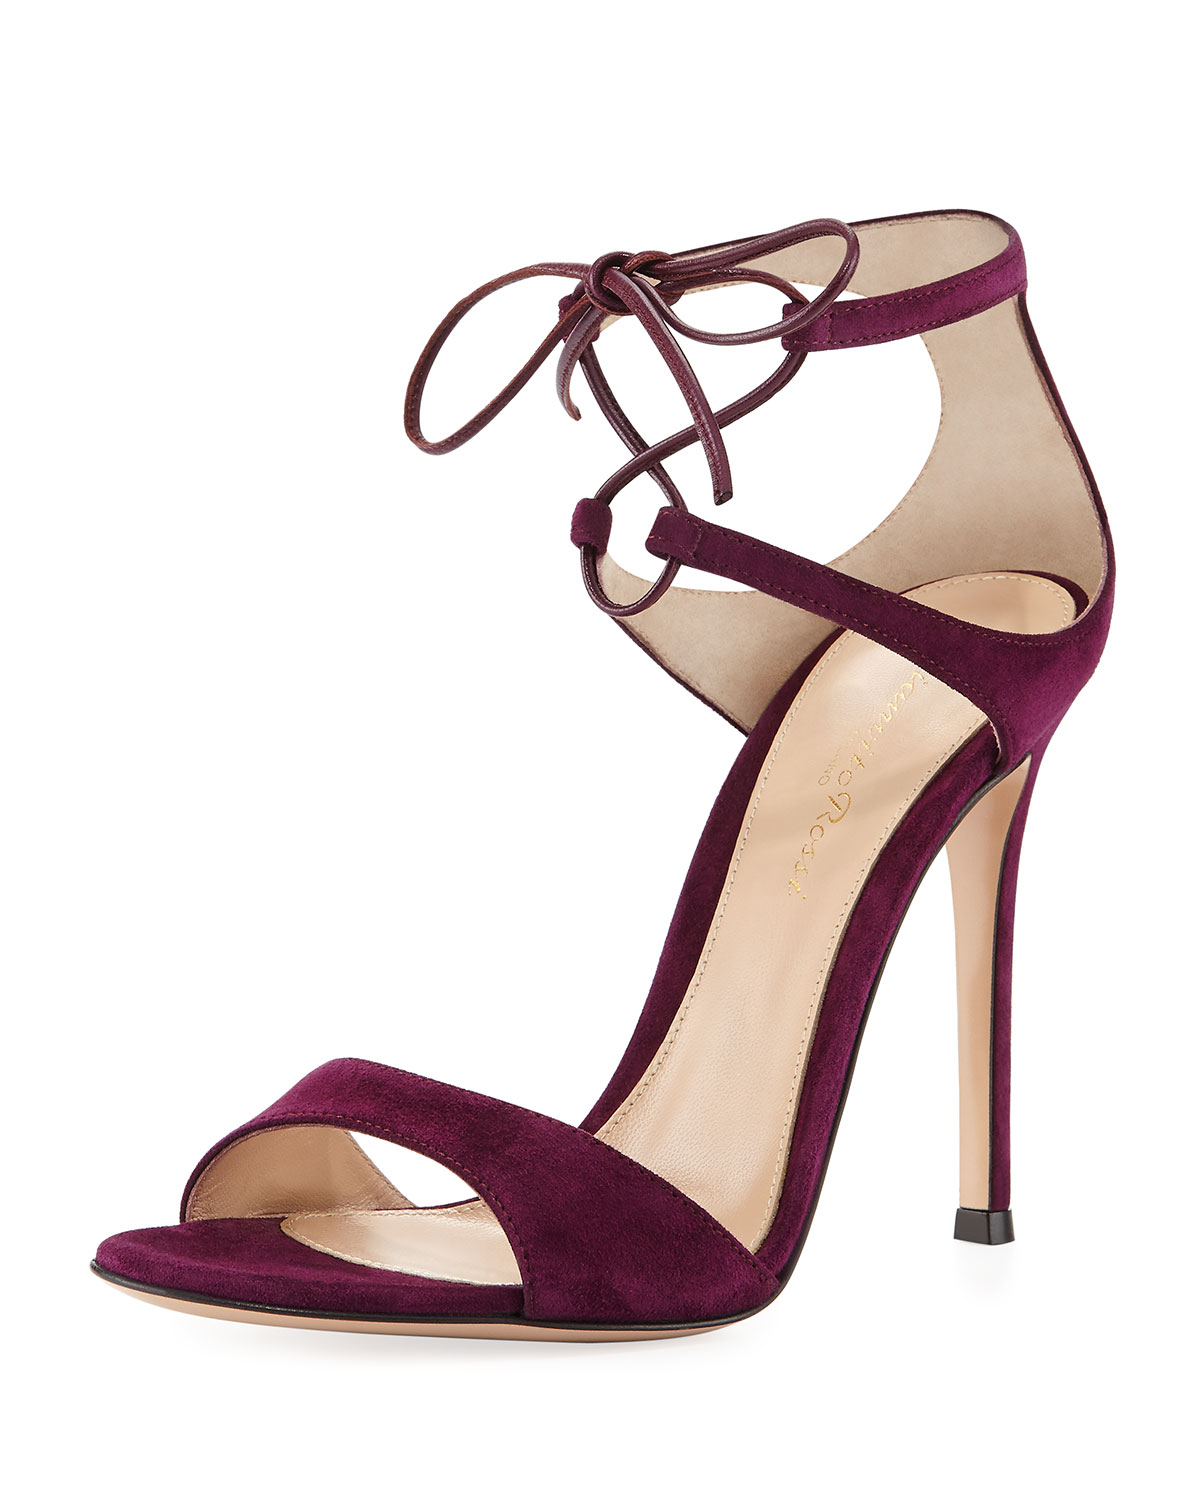 d1750af43473 Gianvito Rossi Strappy Suede 105mm Lace-Up Sandal